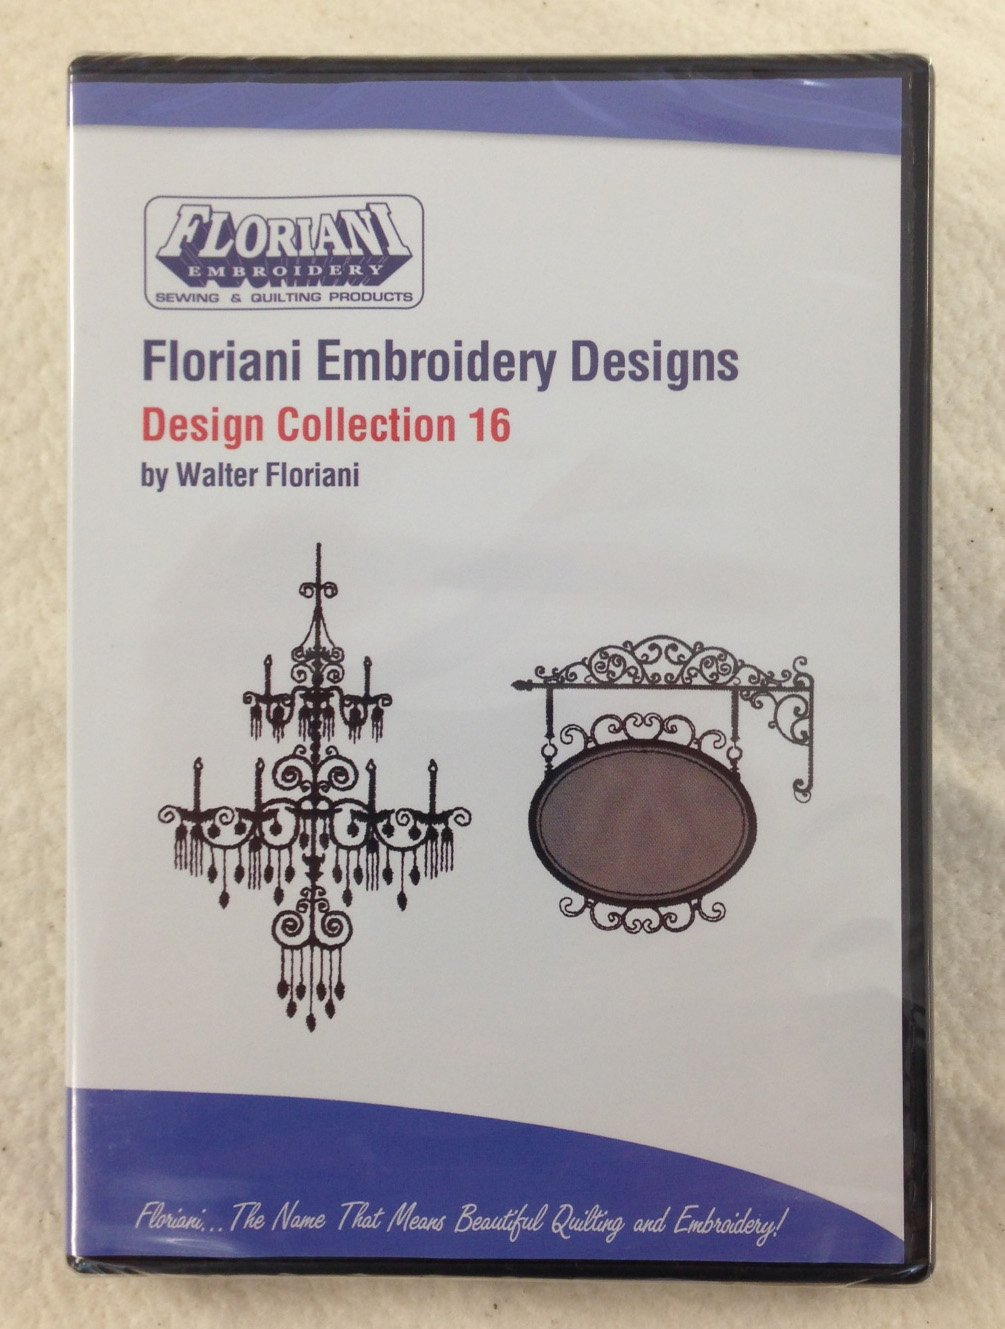 Floriani - Embroidery Design Collection 16 CD